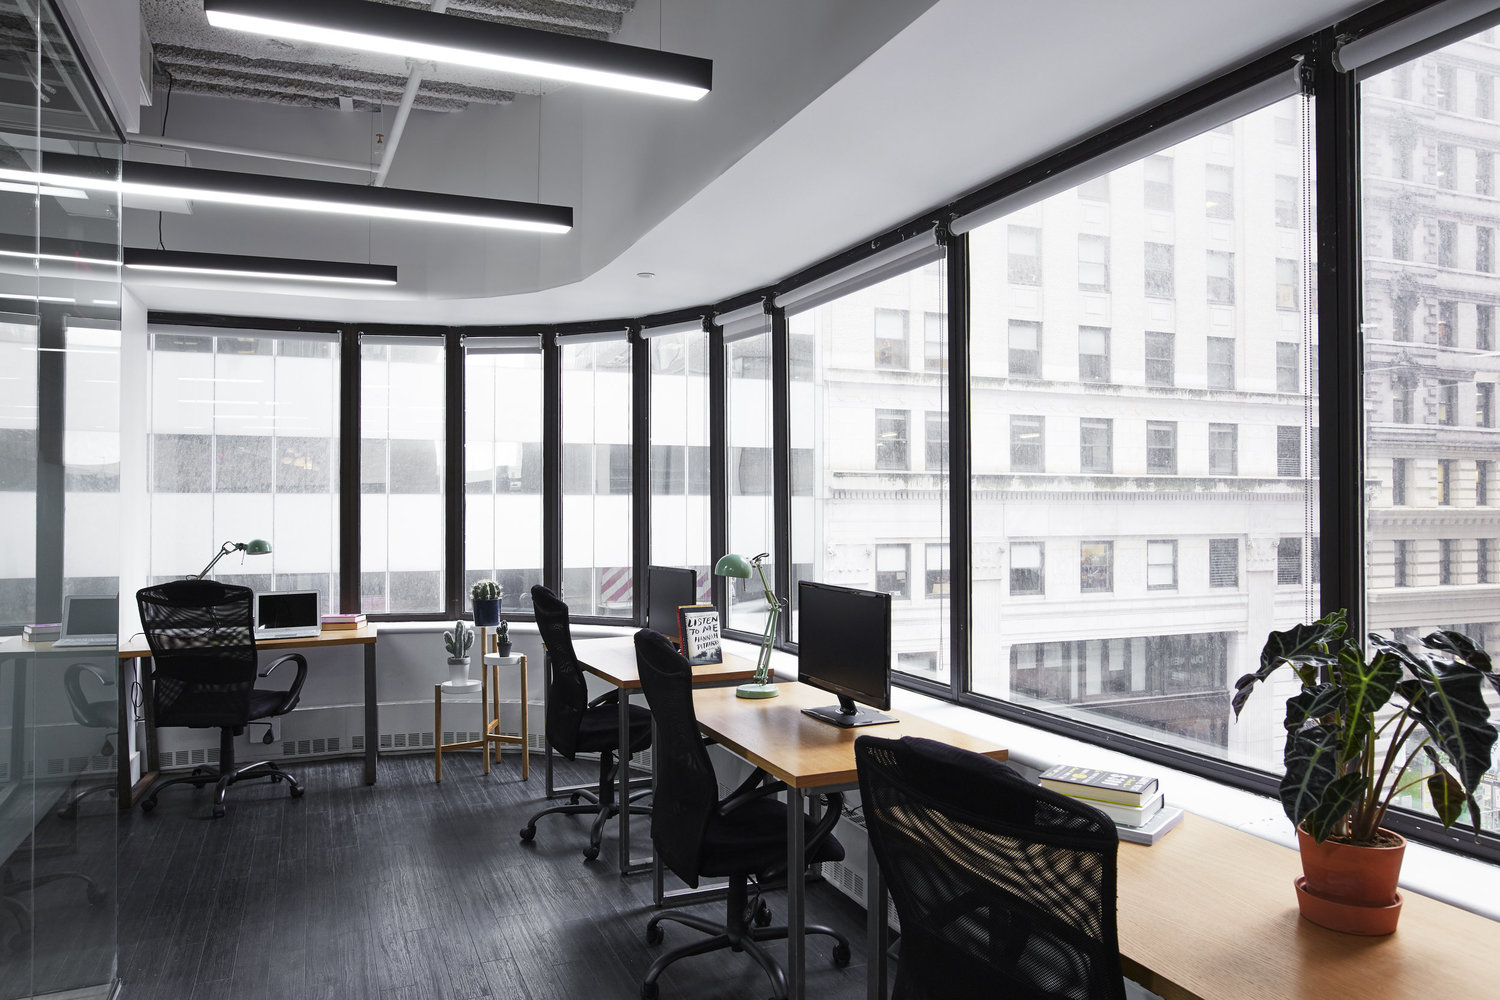 large black and white shared office space with wrap-around windows, desks and chairs